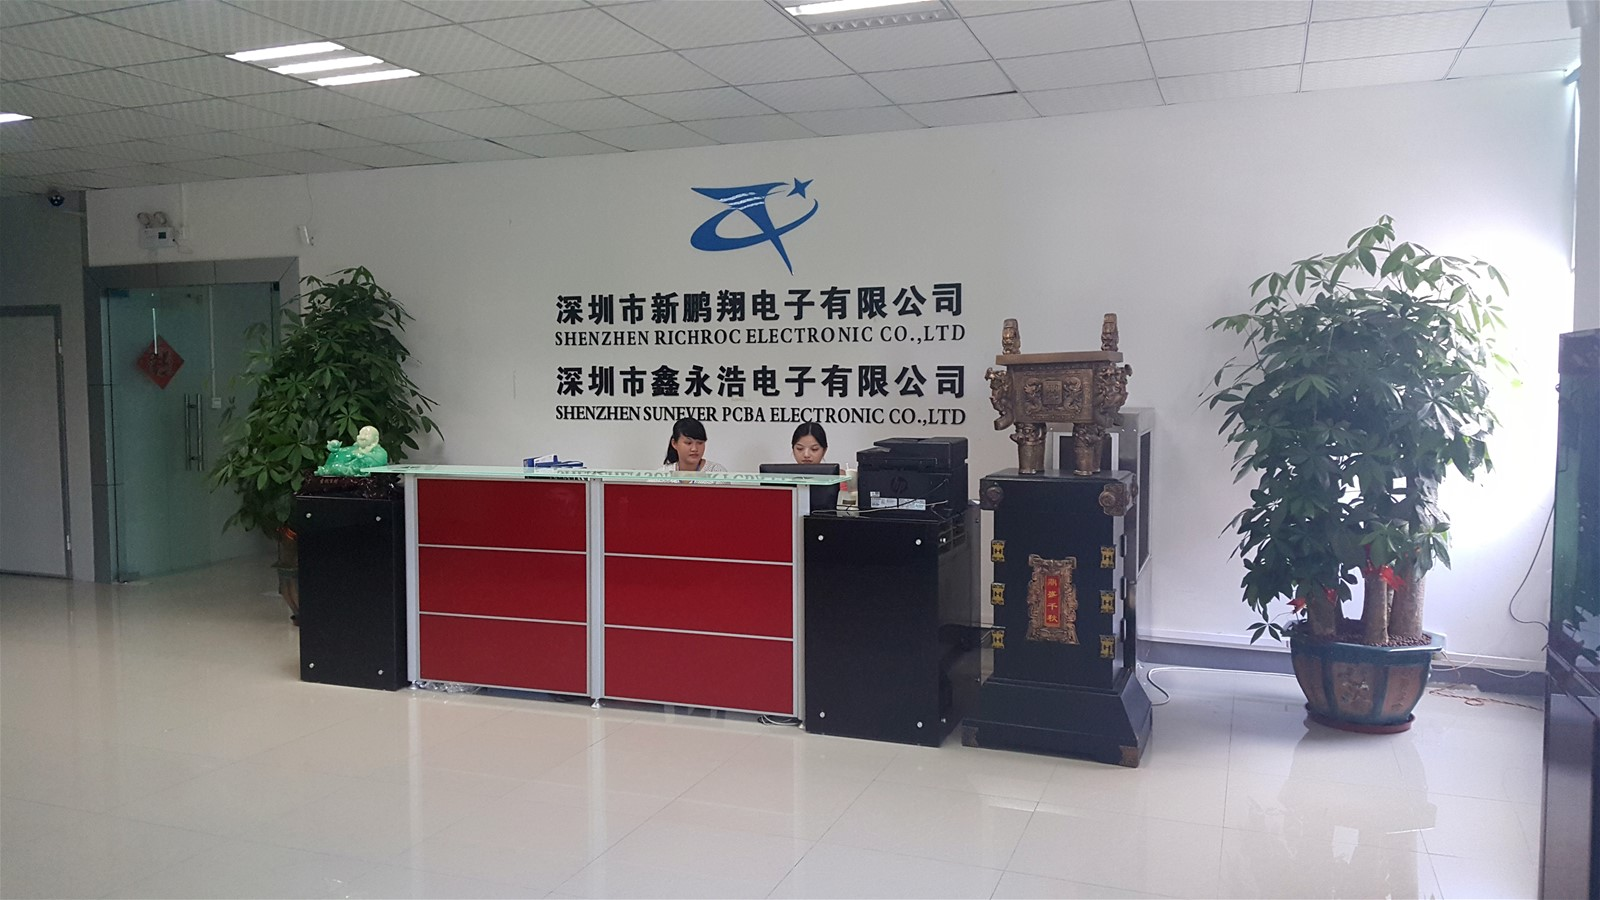 Shenzhen Richroc Electronic Co., Ltd.